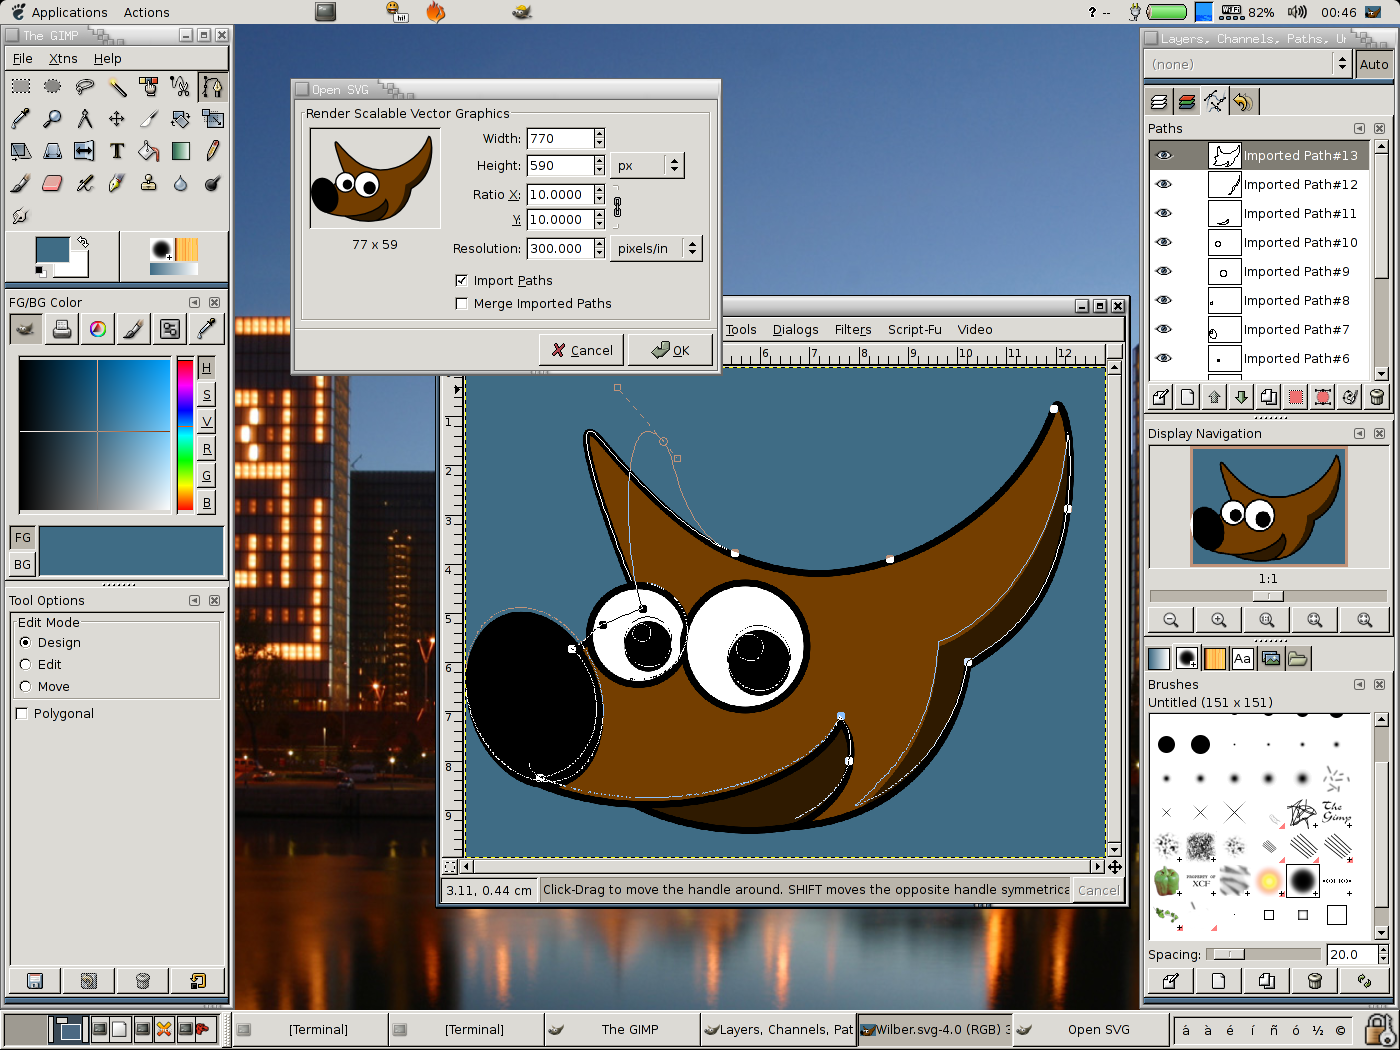 Download Gimp Free Replacement For Adobe Photoshop Free Photo Editing Photo Editing Free Image Editing Software